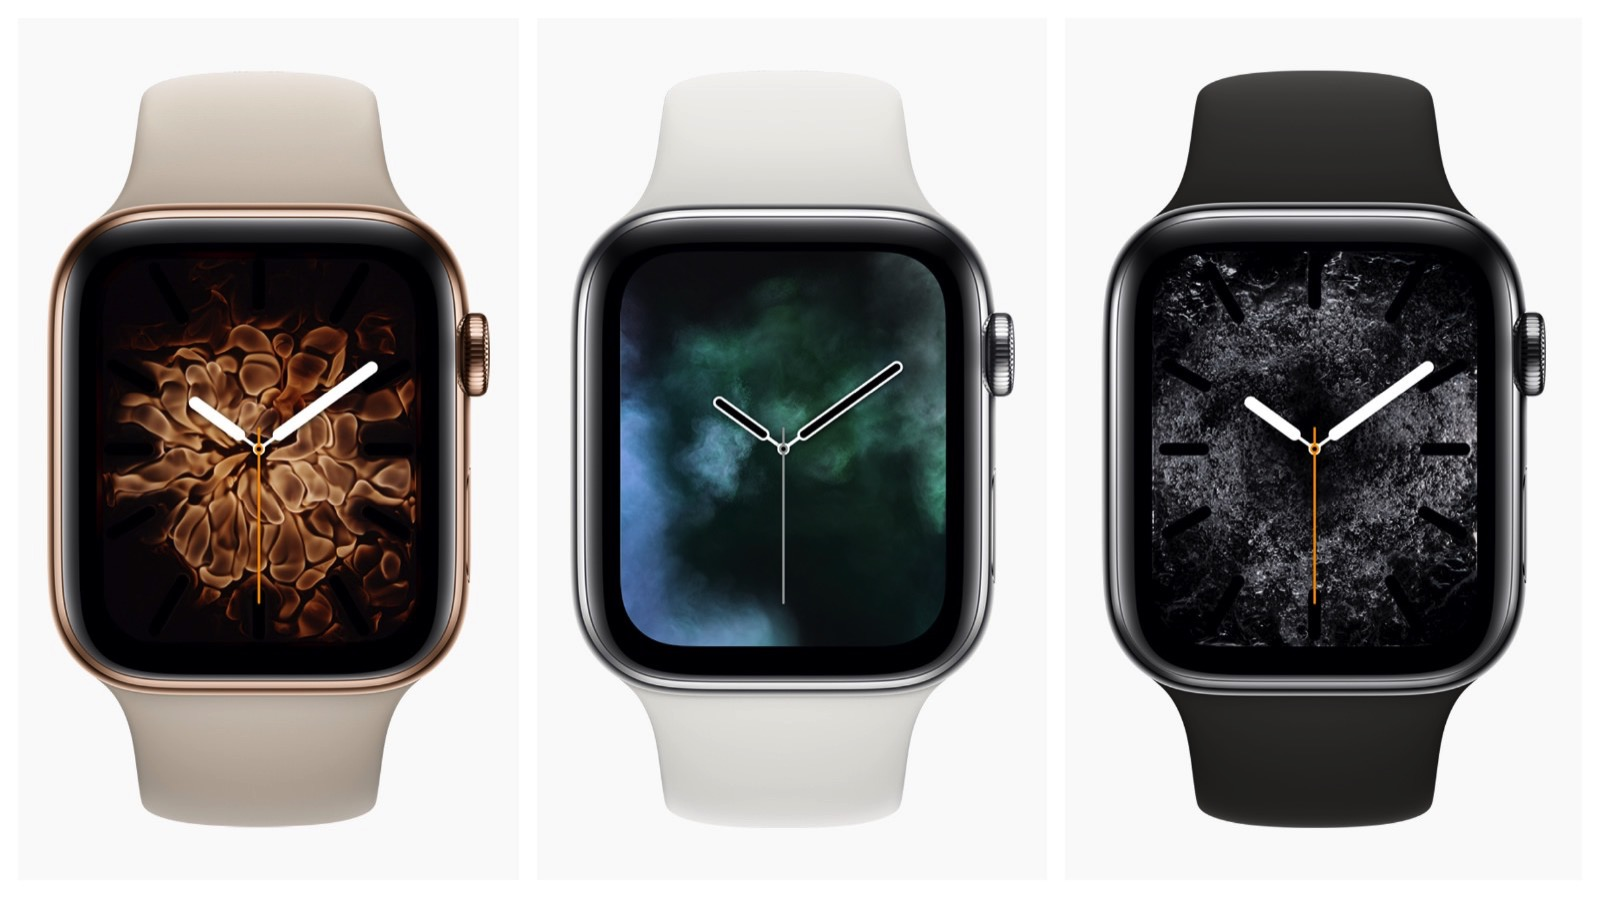 New-Watch-Faces-for-series-4.jpg